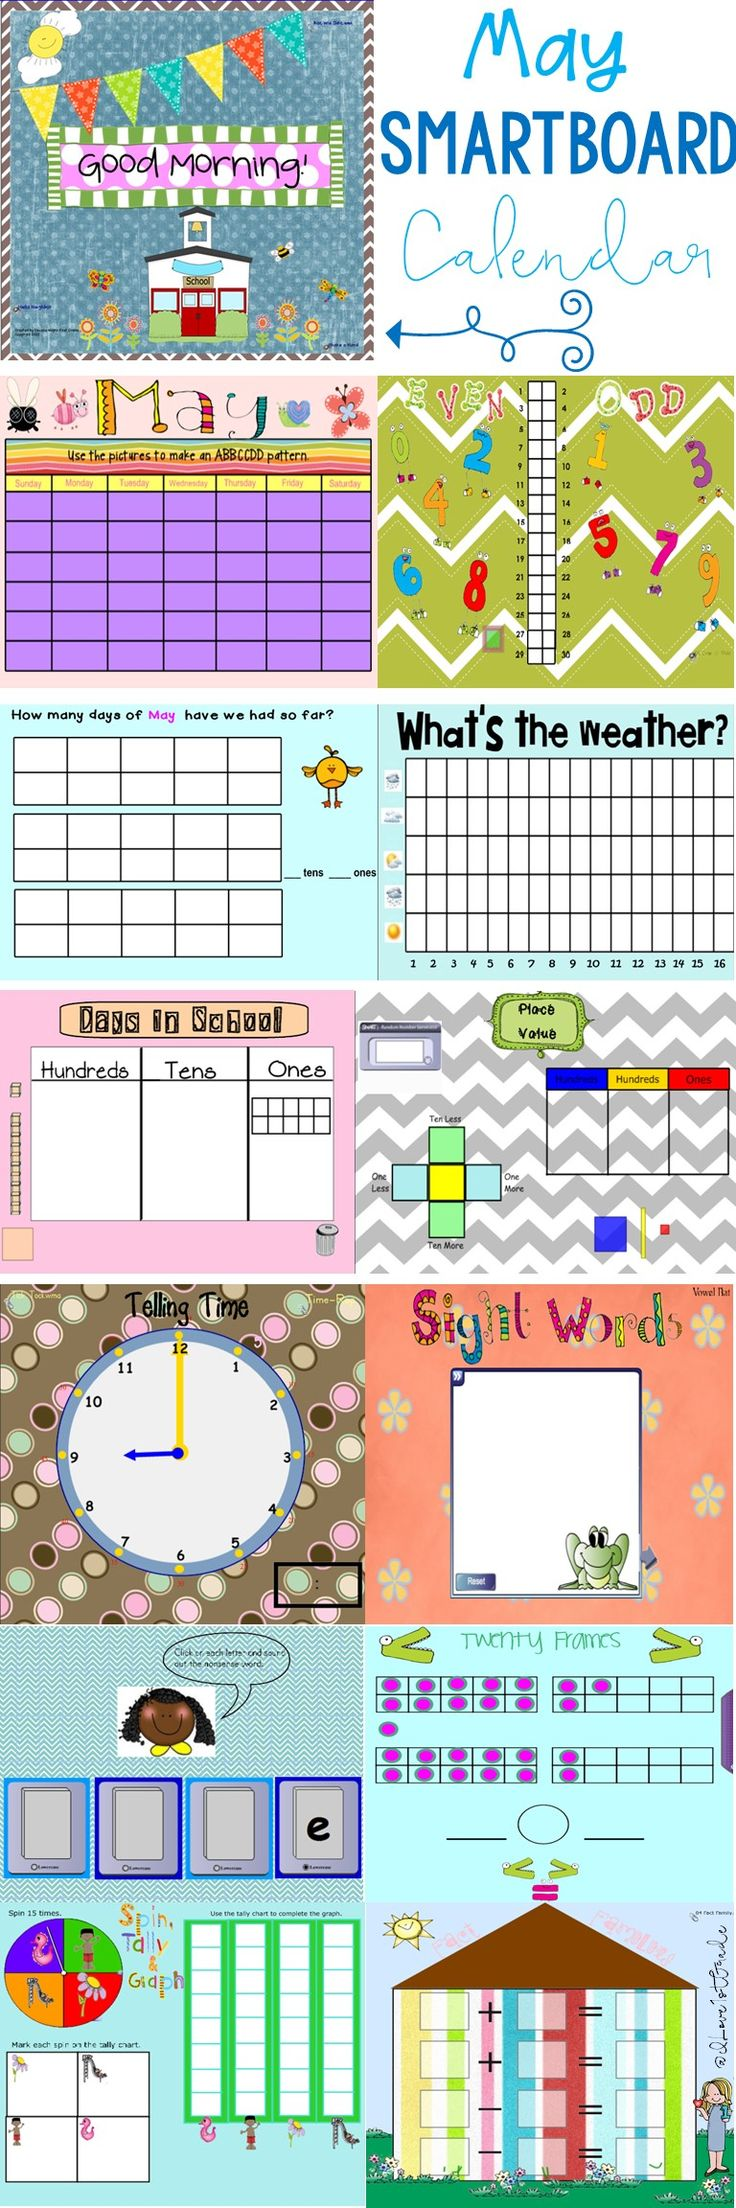 This 22 page SMARTBoard calendar is all you'll need to begin each day of May with a rigorous yet engaging start. It is aligned with CCSS ELA and NBT, Geometry, Data and Measurement and Operations standards.  This product includes a calendar, months of the year page, odd/even days of the month, days of school page, place value days in school, money count, ten and twenty frames, modify-able sight word page, cut out number grid puzzle, fact families, weather graph, greater/less than page, skip…